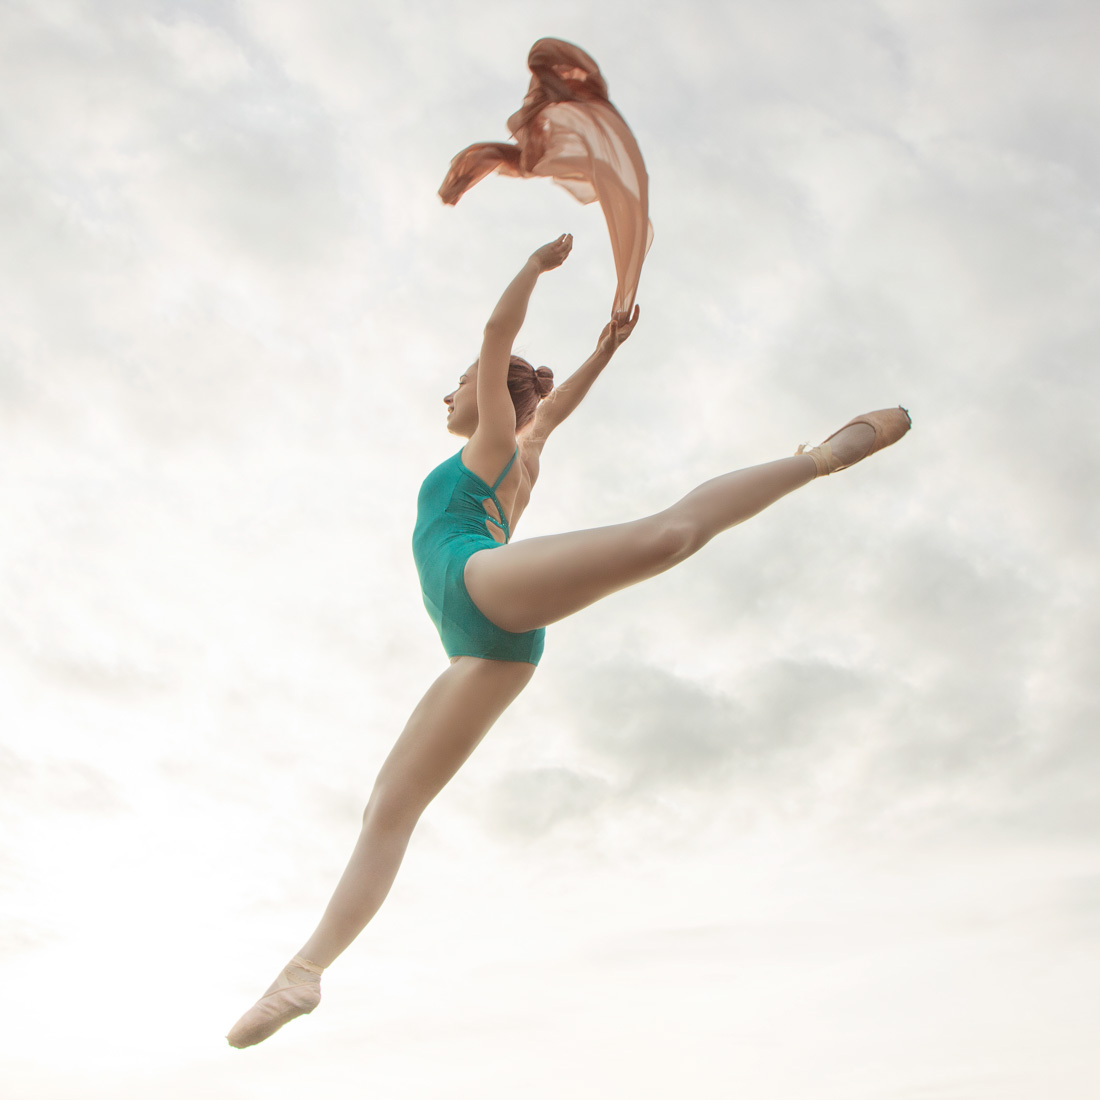 Ballerina in a turquoise leotard is jumping while holding a beige colour scarf. Creative ballet dance photography